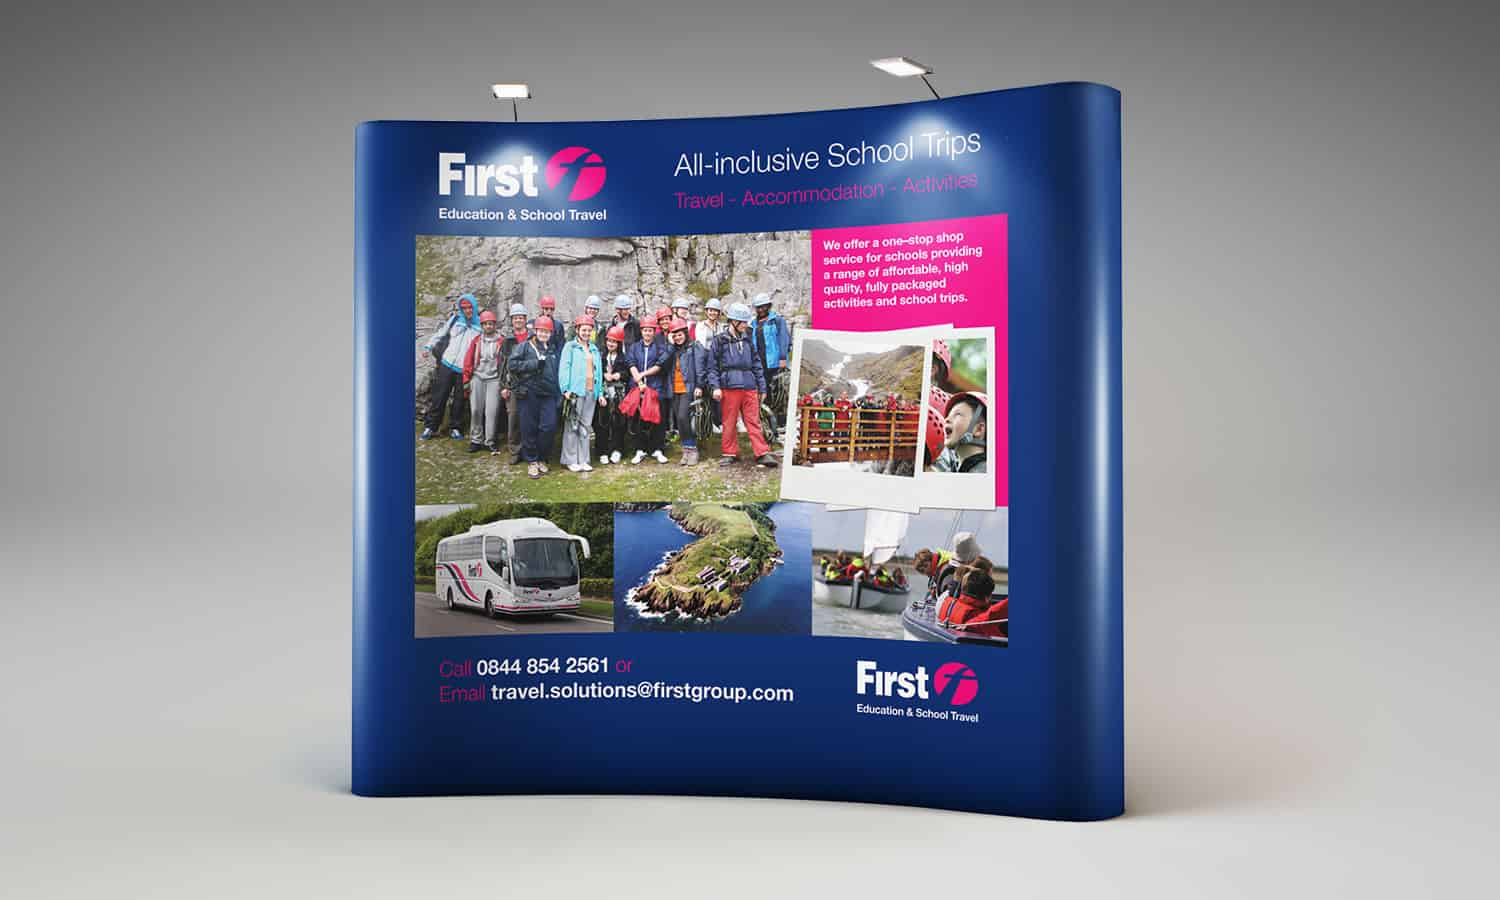 First Education & School travel exhibition stand